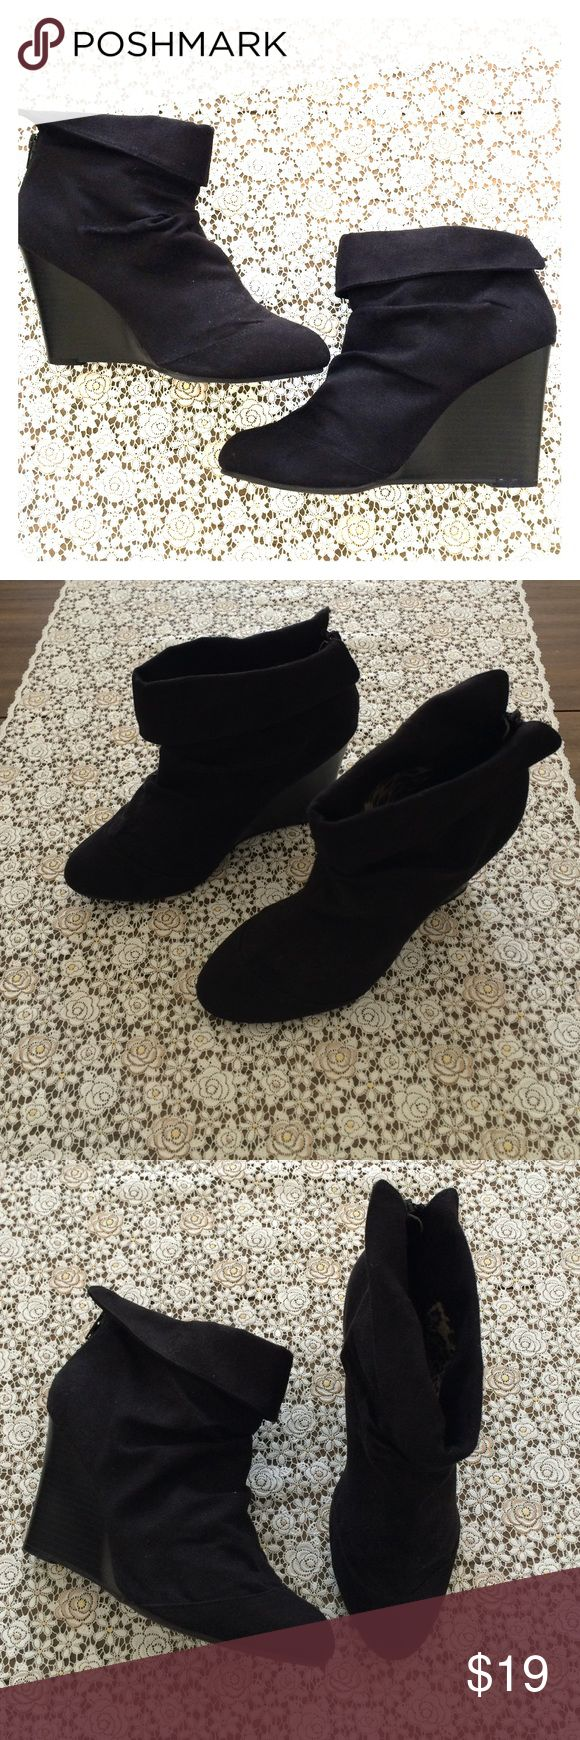 Kenneth Cole Unlisted Black ankle boots 8 Kenneth Cole Unlisted Black wedge ankle boots 8. Good condition. Back zipper. Wedge style. 💋 Unlisted Shoes Ankle Boots & Booties